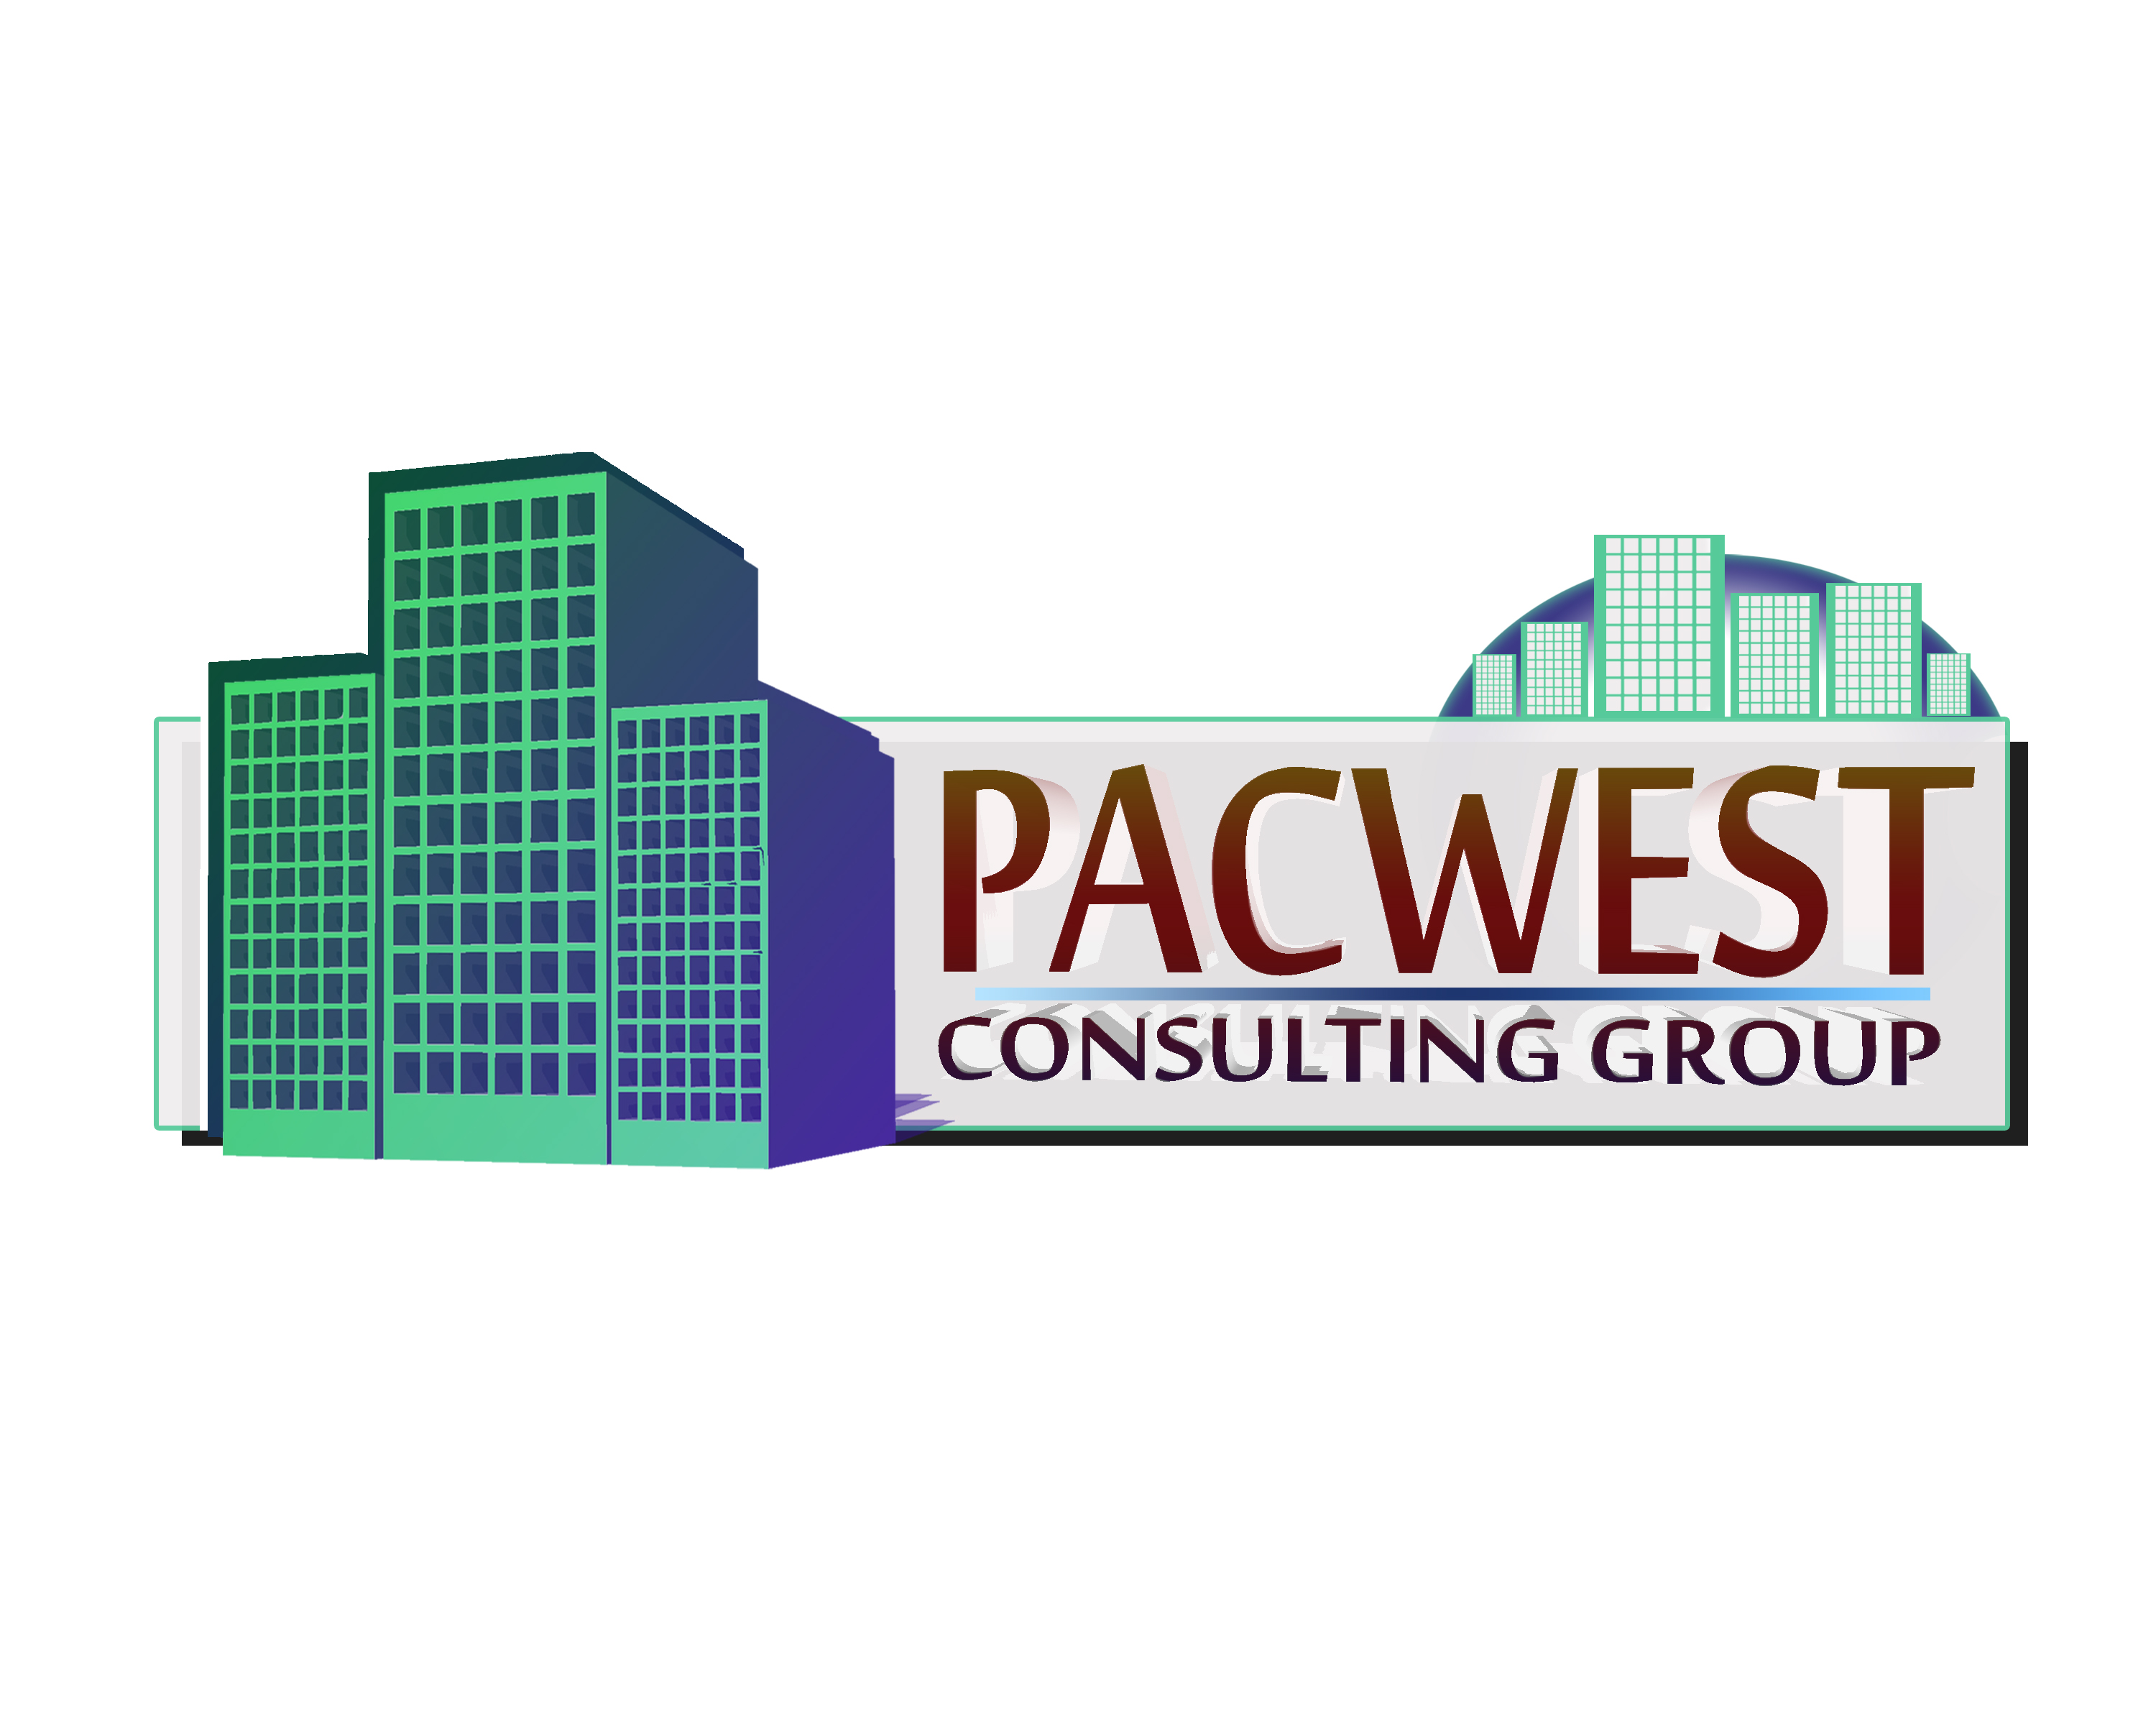 Logo Design by Bolkiah Verdadero - Entry No. 17 in the Logo Design Contest Imaginative Logo Design for Pacwest Consulting Group.